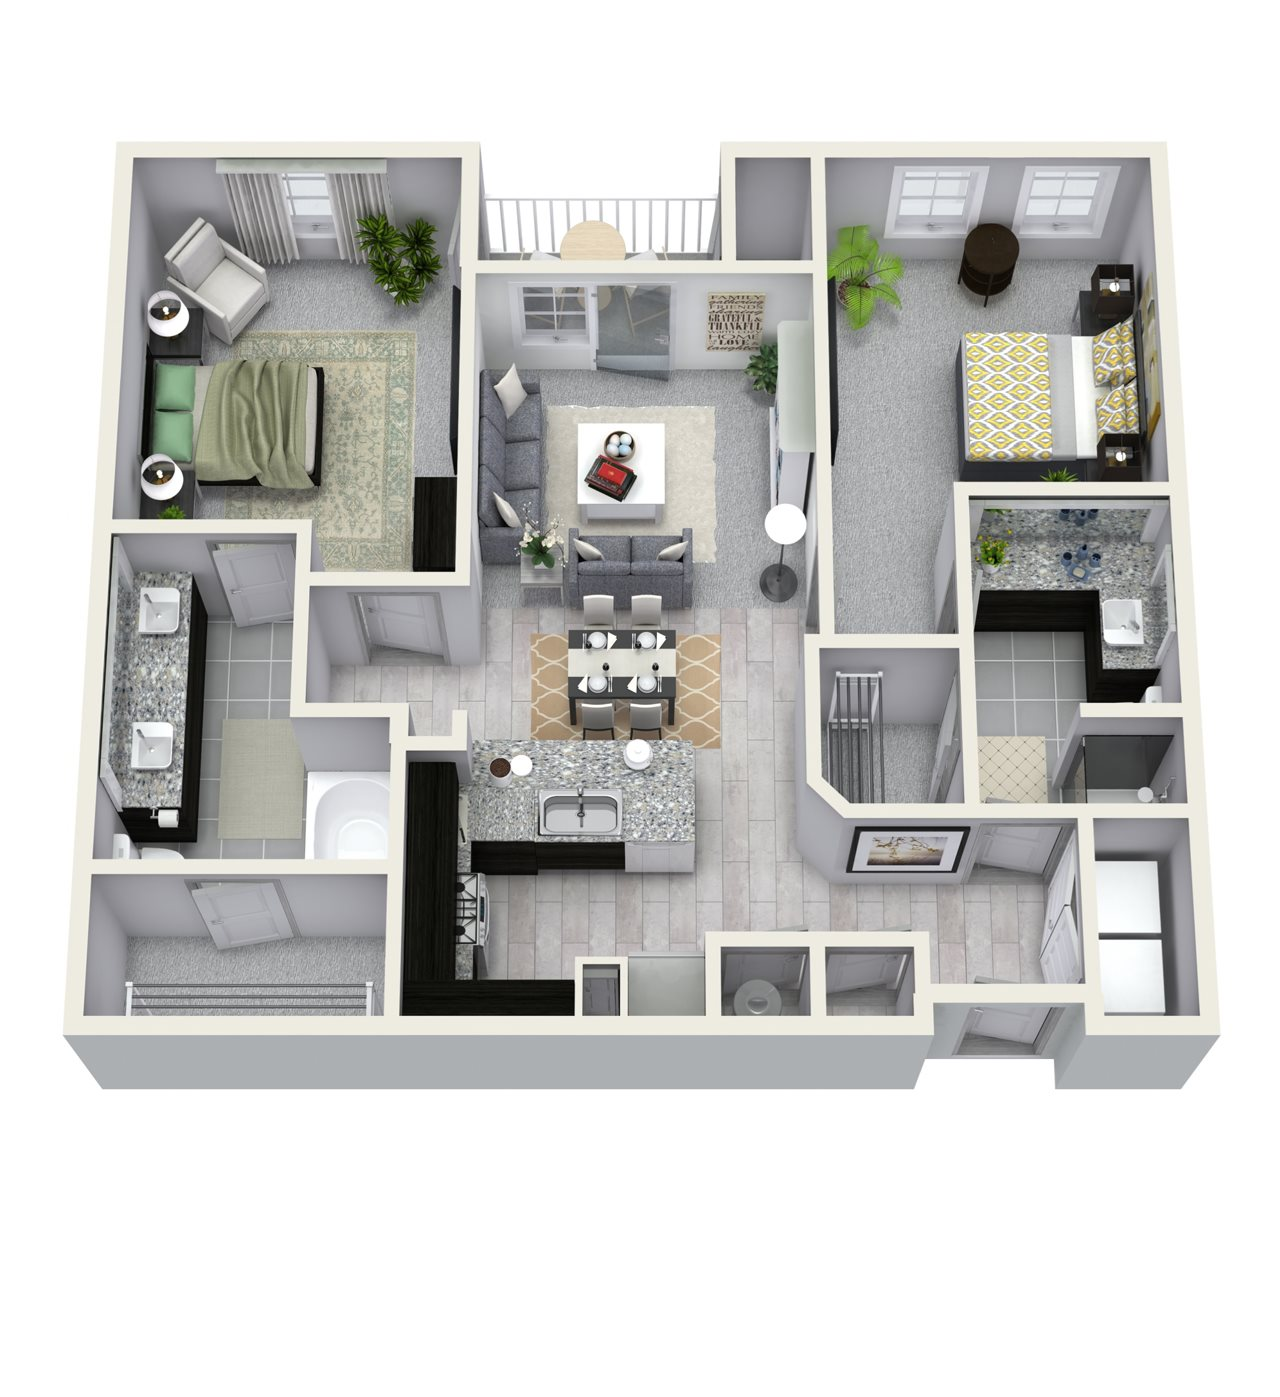 2 Bedroom 2 Bath 1107 sqft B2 Floor Plan 9